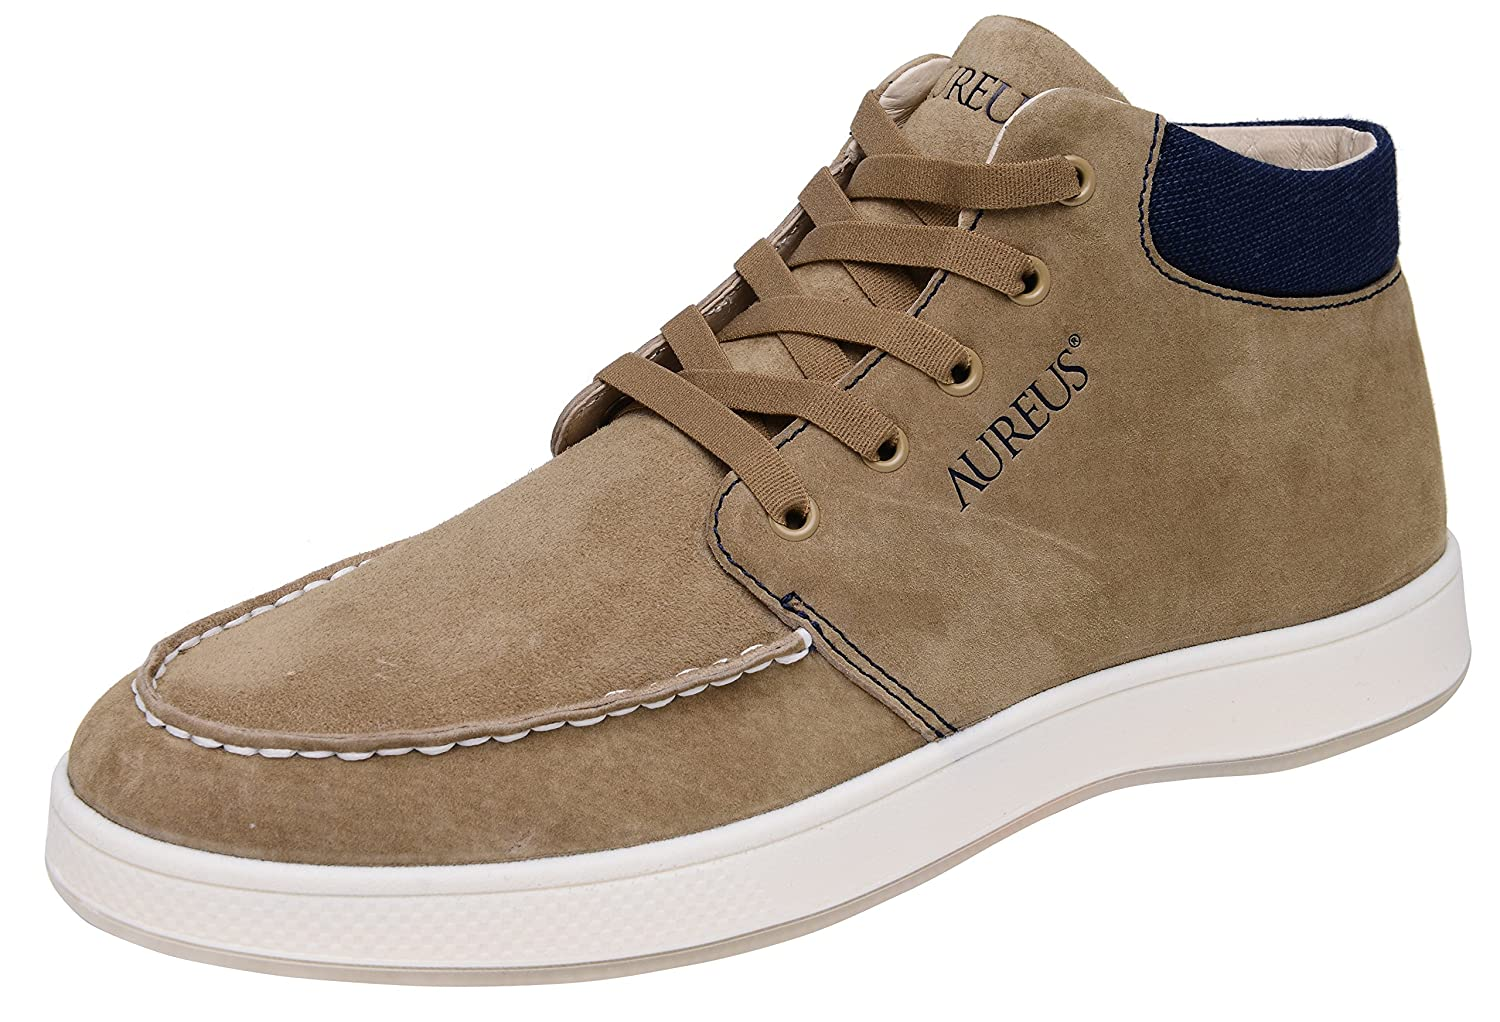 Aureus Men's Ruben Nubuck Leather Mid Top Shoe B01E9ENE1E 9.5 D(M) US|Khaki